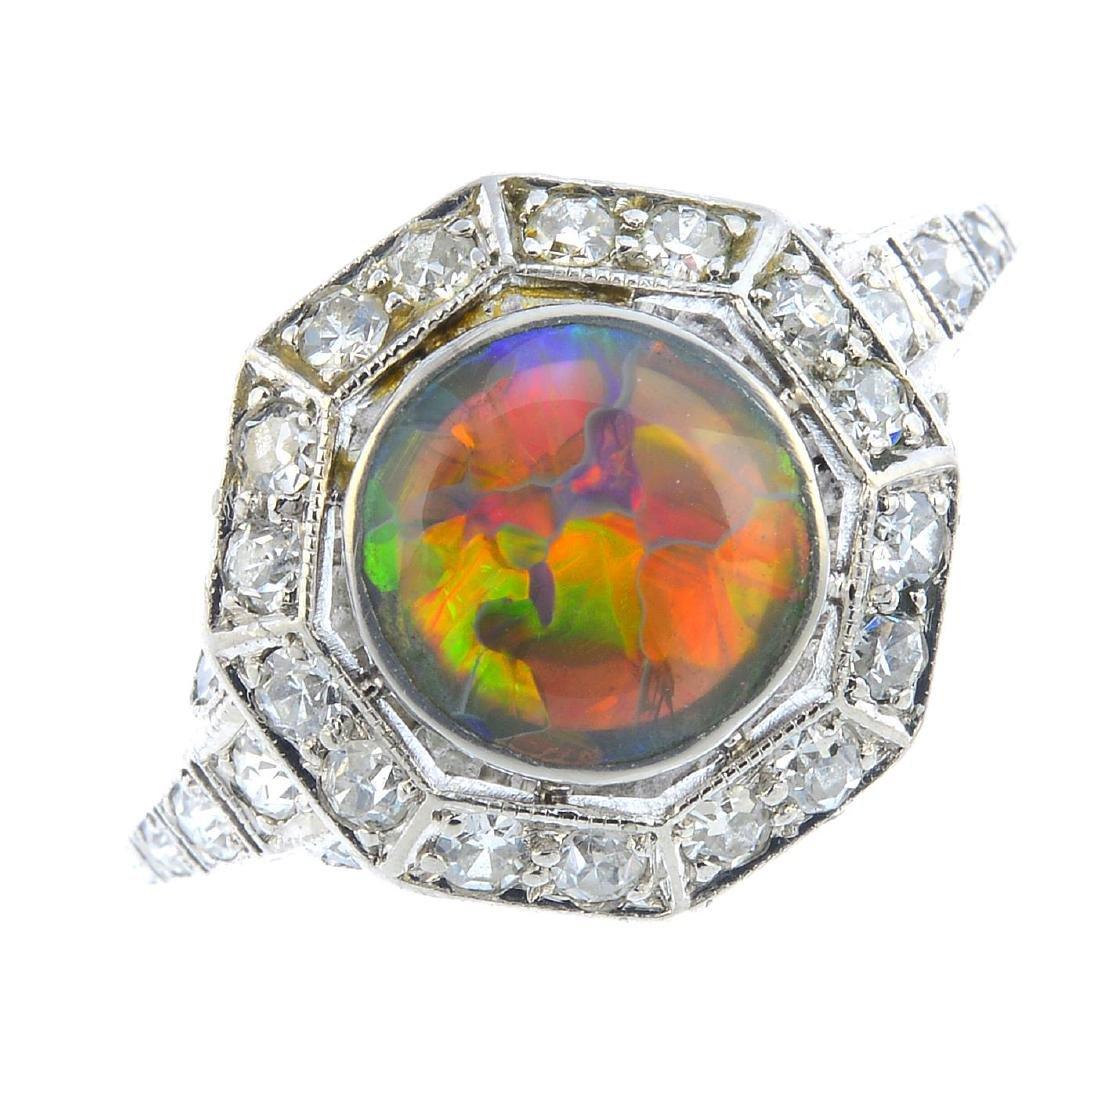 An Art Deco platinum opal and diamond cluster ring. The